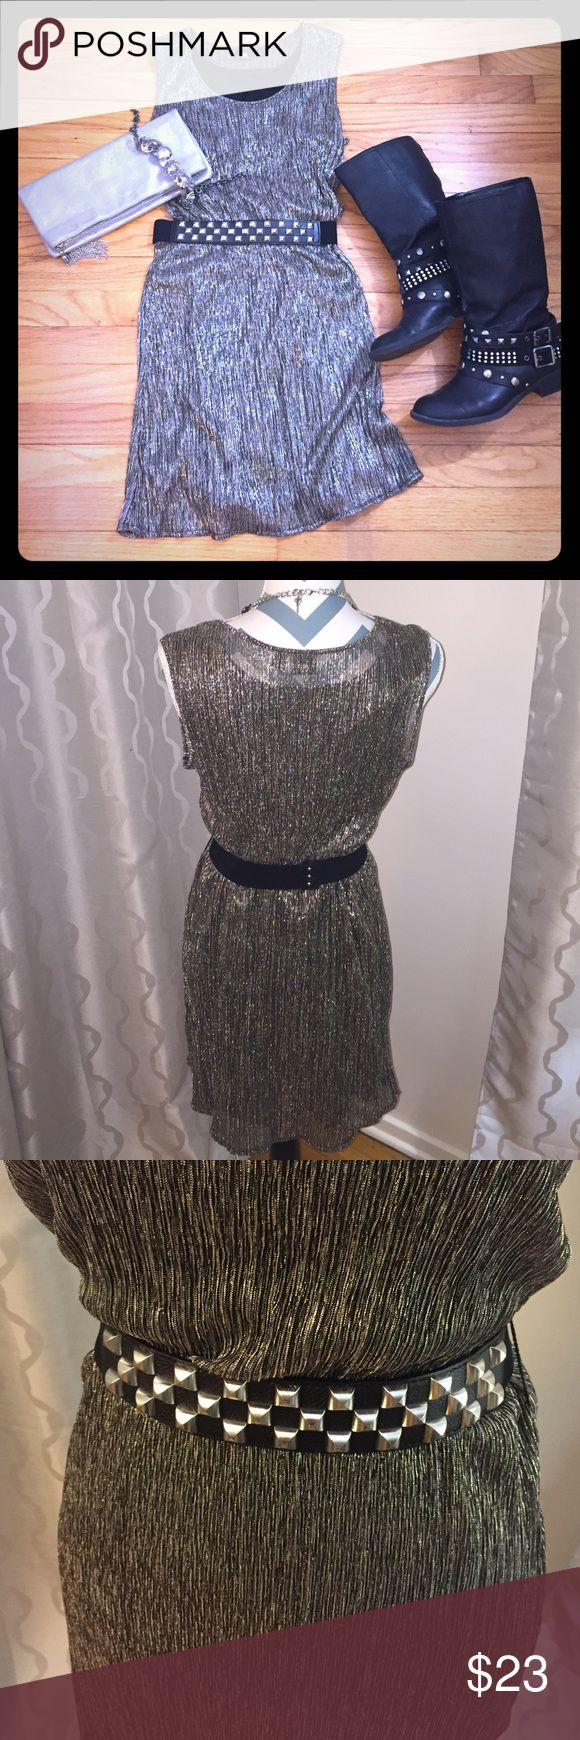 Rock & Republic silver sparkly dress with belt. Rock & Republic silver sparkly dress with studded belt. Great dress for a night out. Belt adds a touch of extra detail. Great condition, worn once. Clutch and boots are also available for sale in my closet; bundle and save! No trades. Thank you! Rock & Republic Dresses